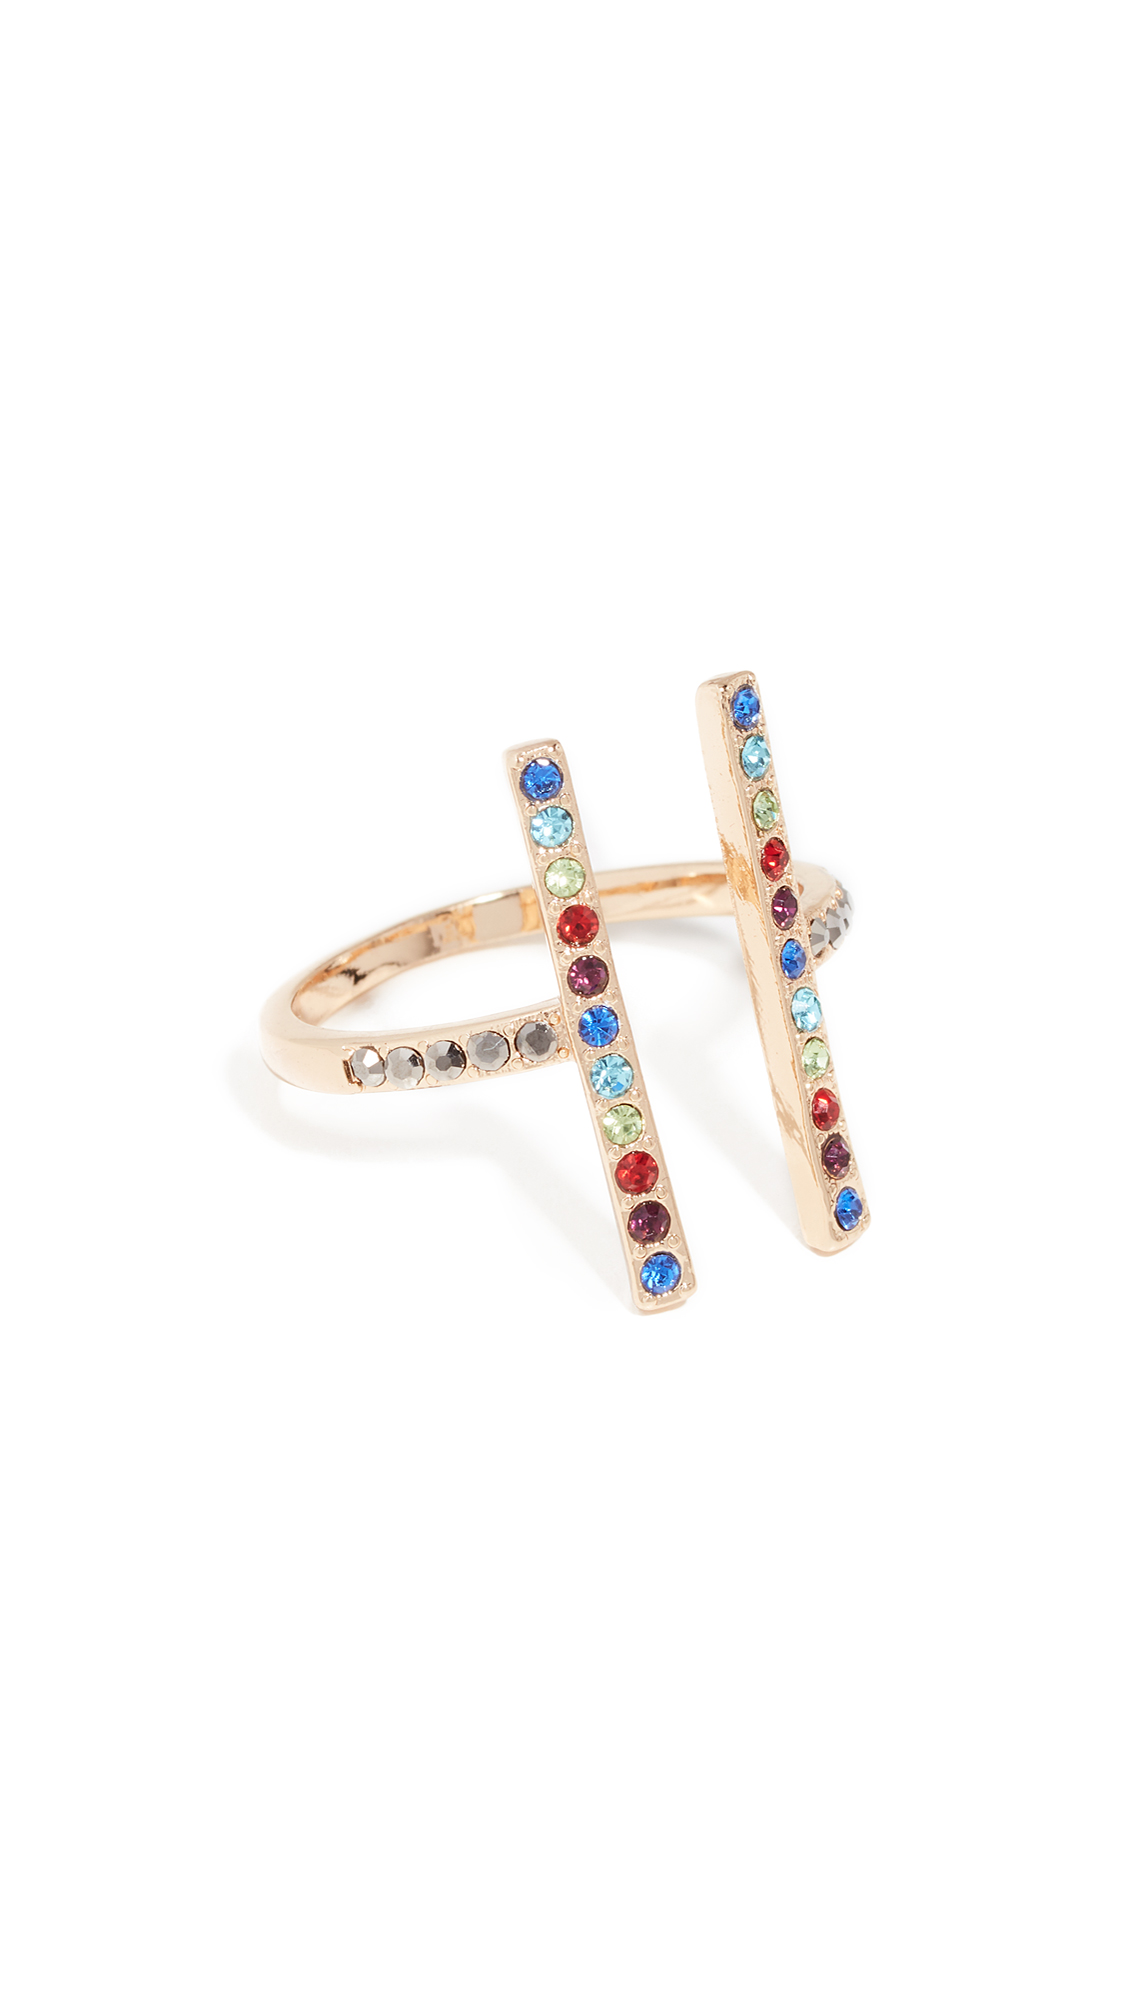 Parallel Lines Ring in Gold/Multi